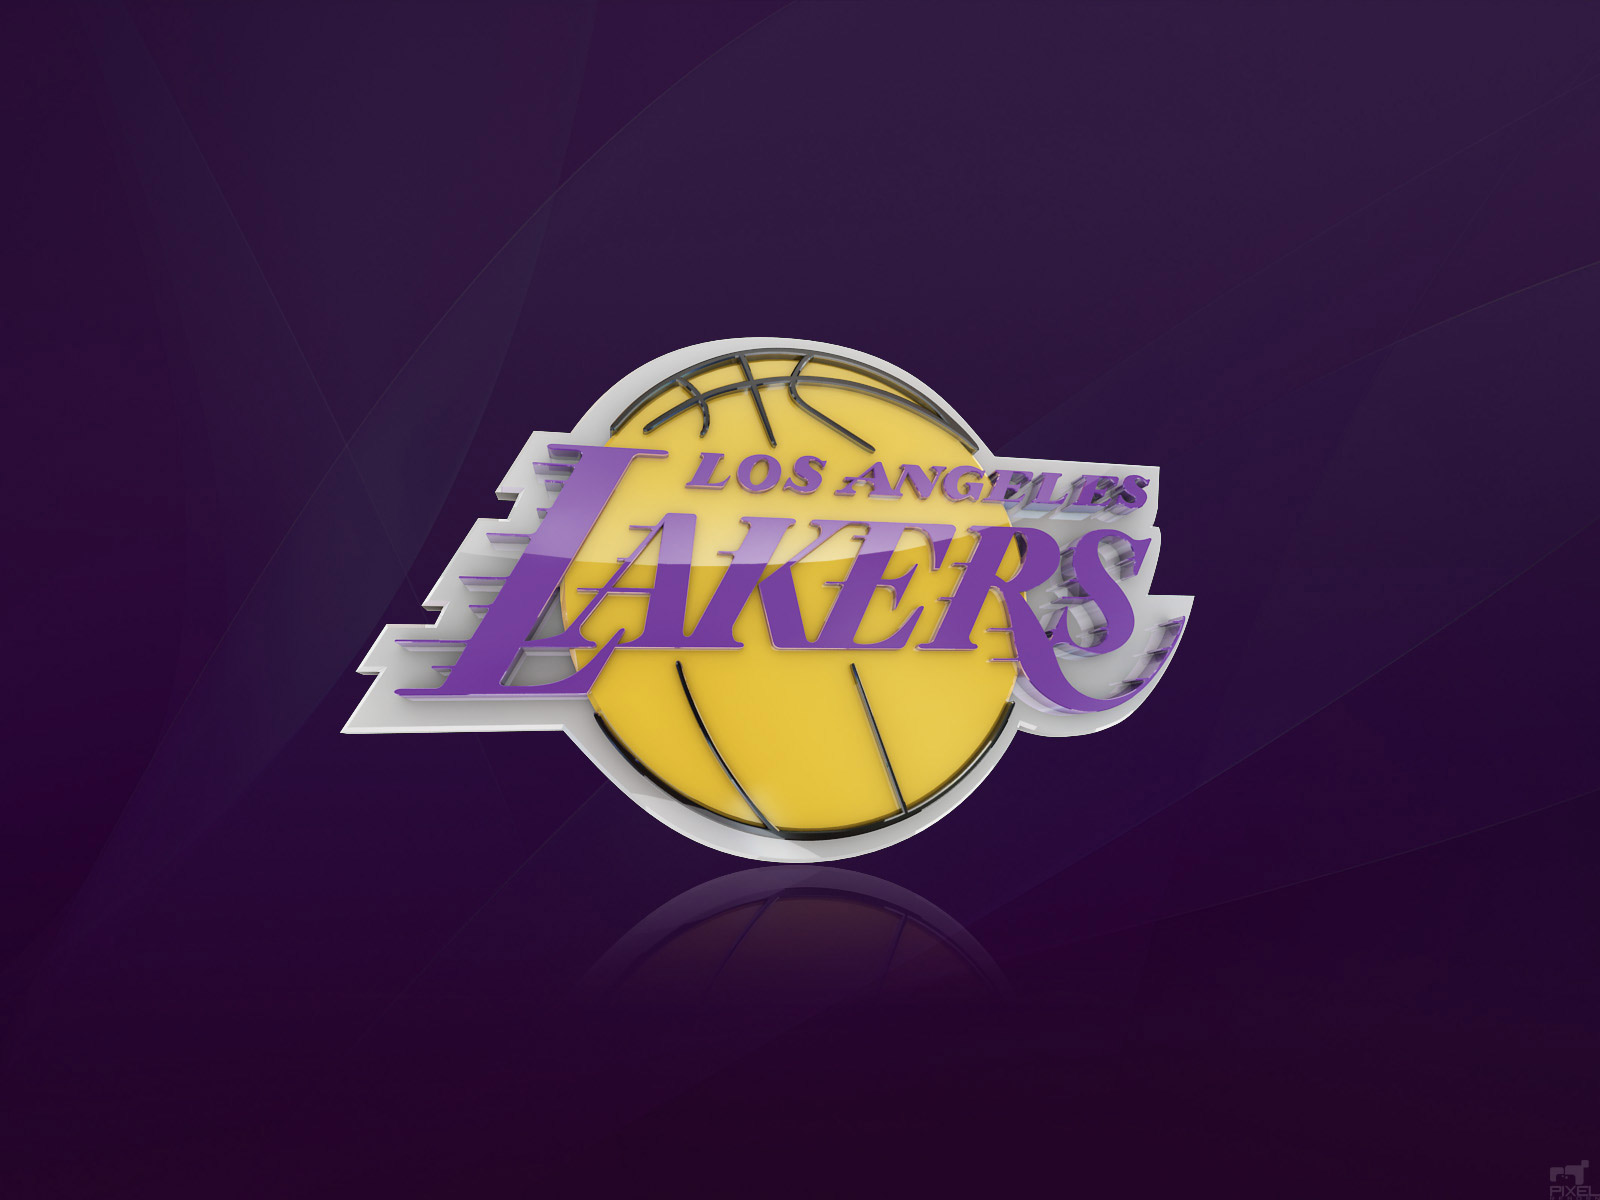 Los Angeles Lakers Wallpapers | Basketball Wallpapers at BasketWallpapers.com